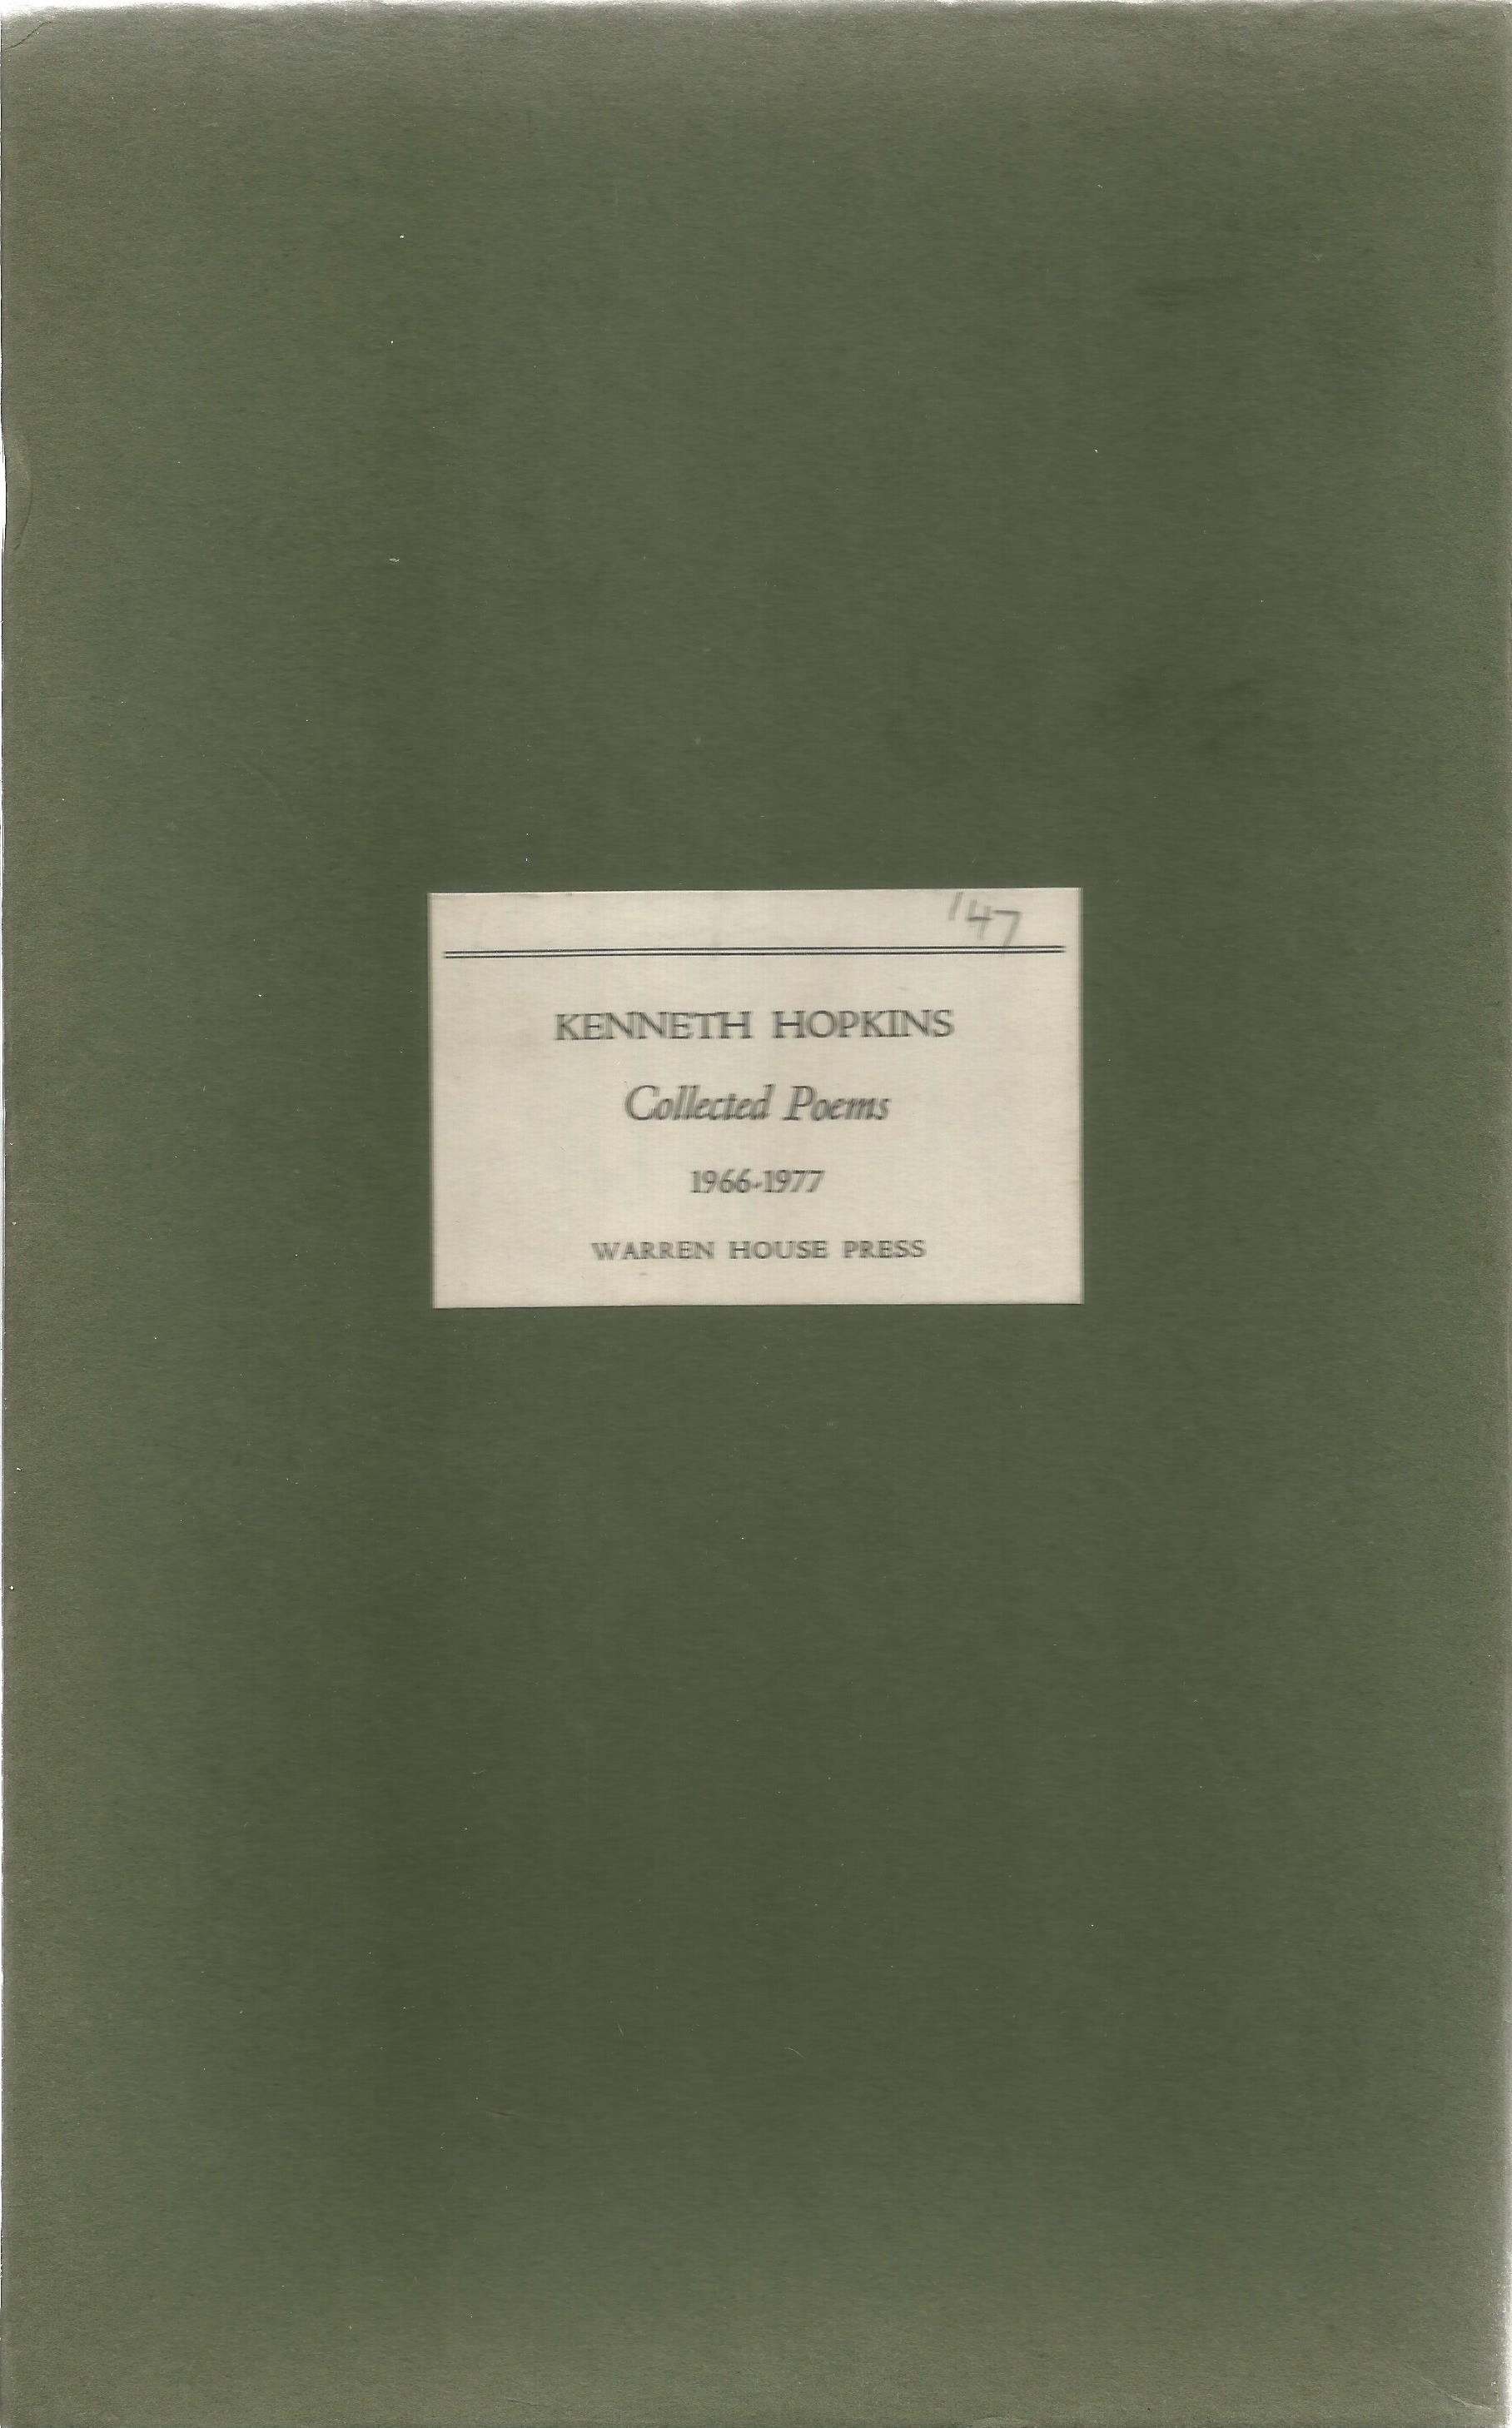 Kenneth Hopkins Hardback Book Collected Poems signed by the Author on the Title Page First Edition